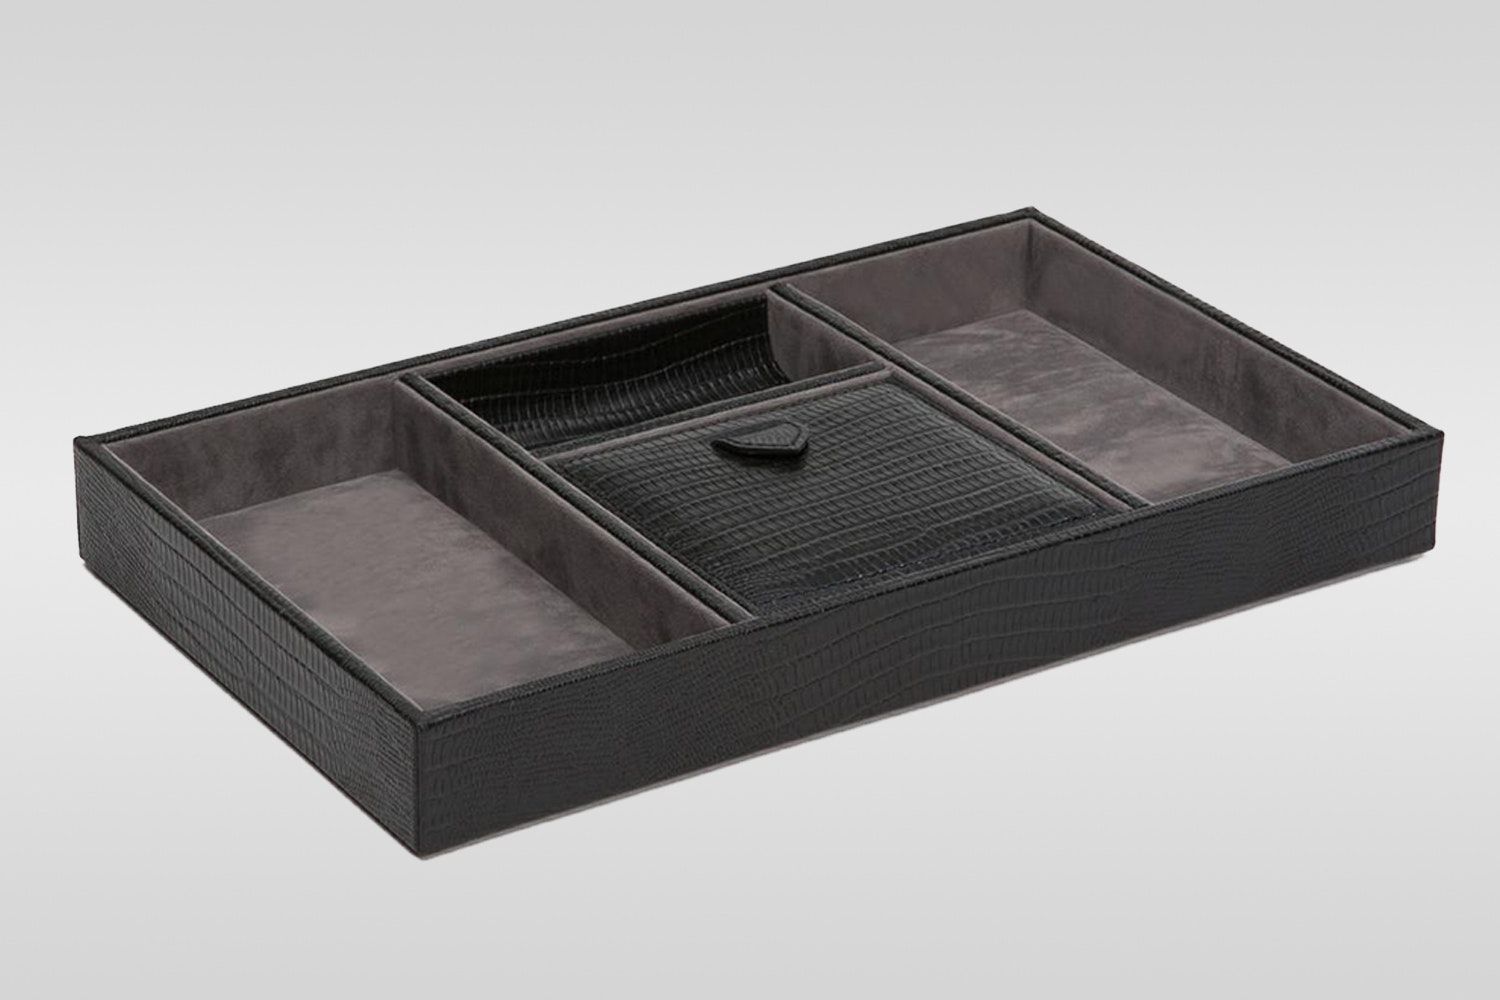 Blake Valet Tray: Black Teju Lizard with Gray Suede